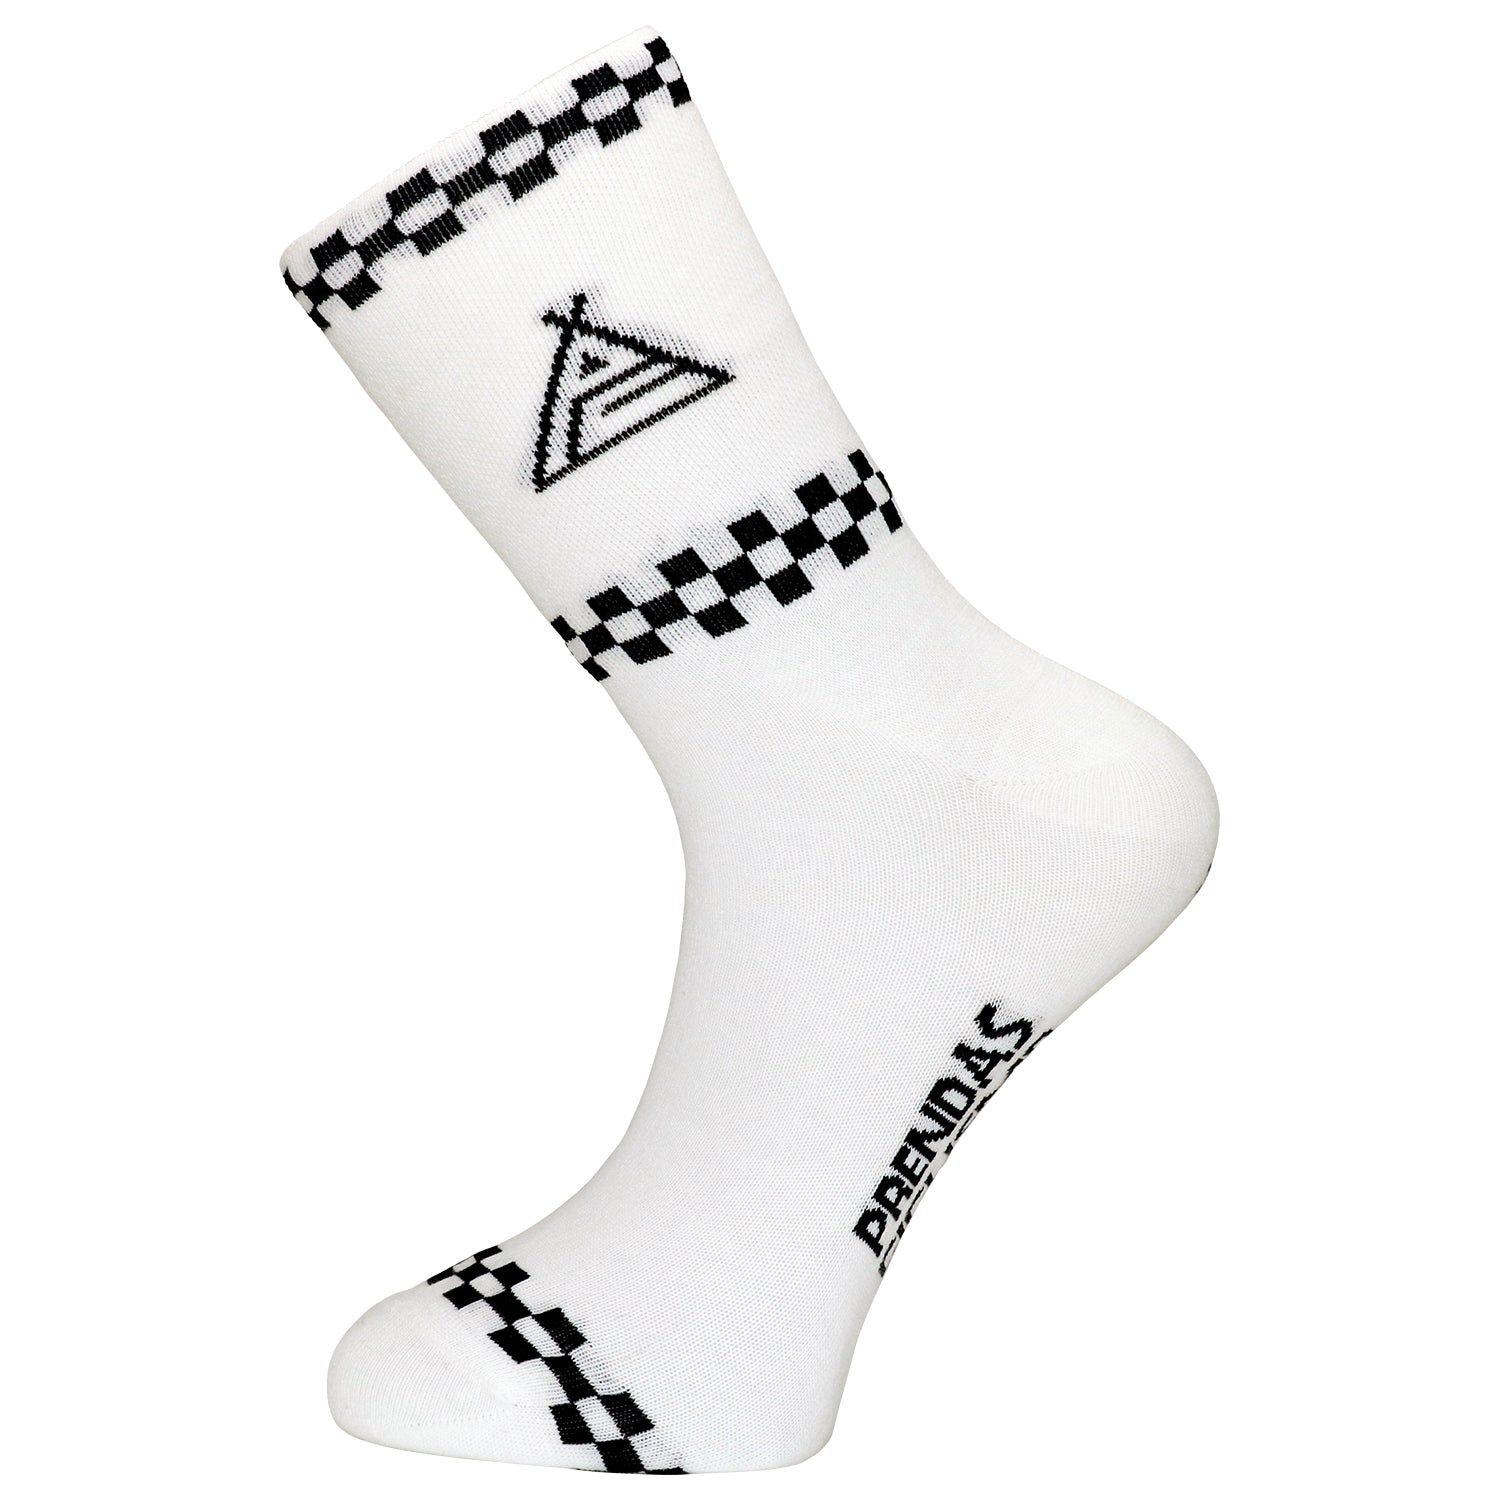 Prendas Ciclismo Checkerboard Coolmax Socks